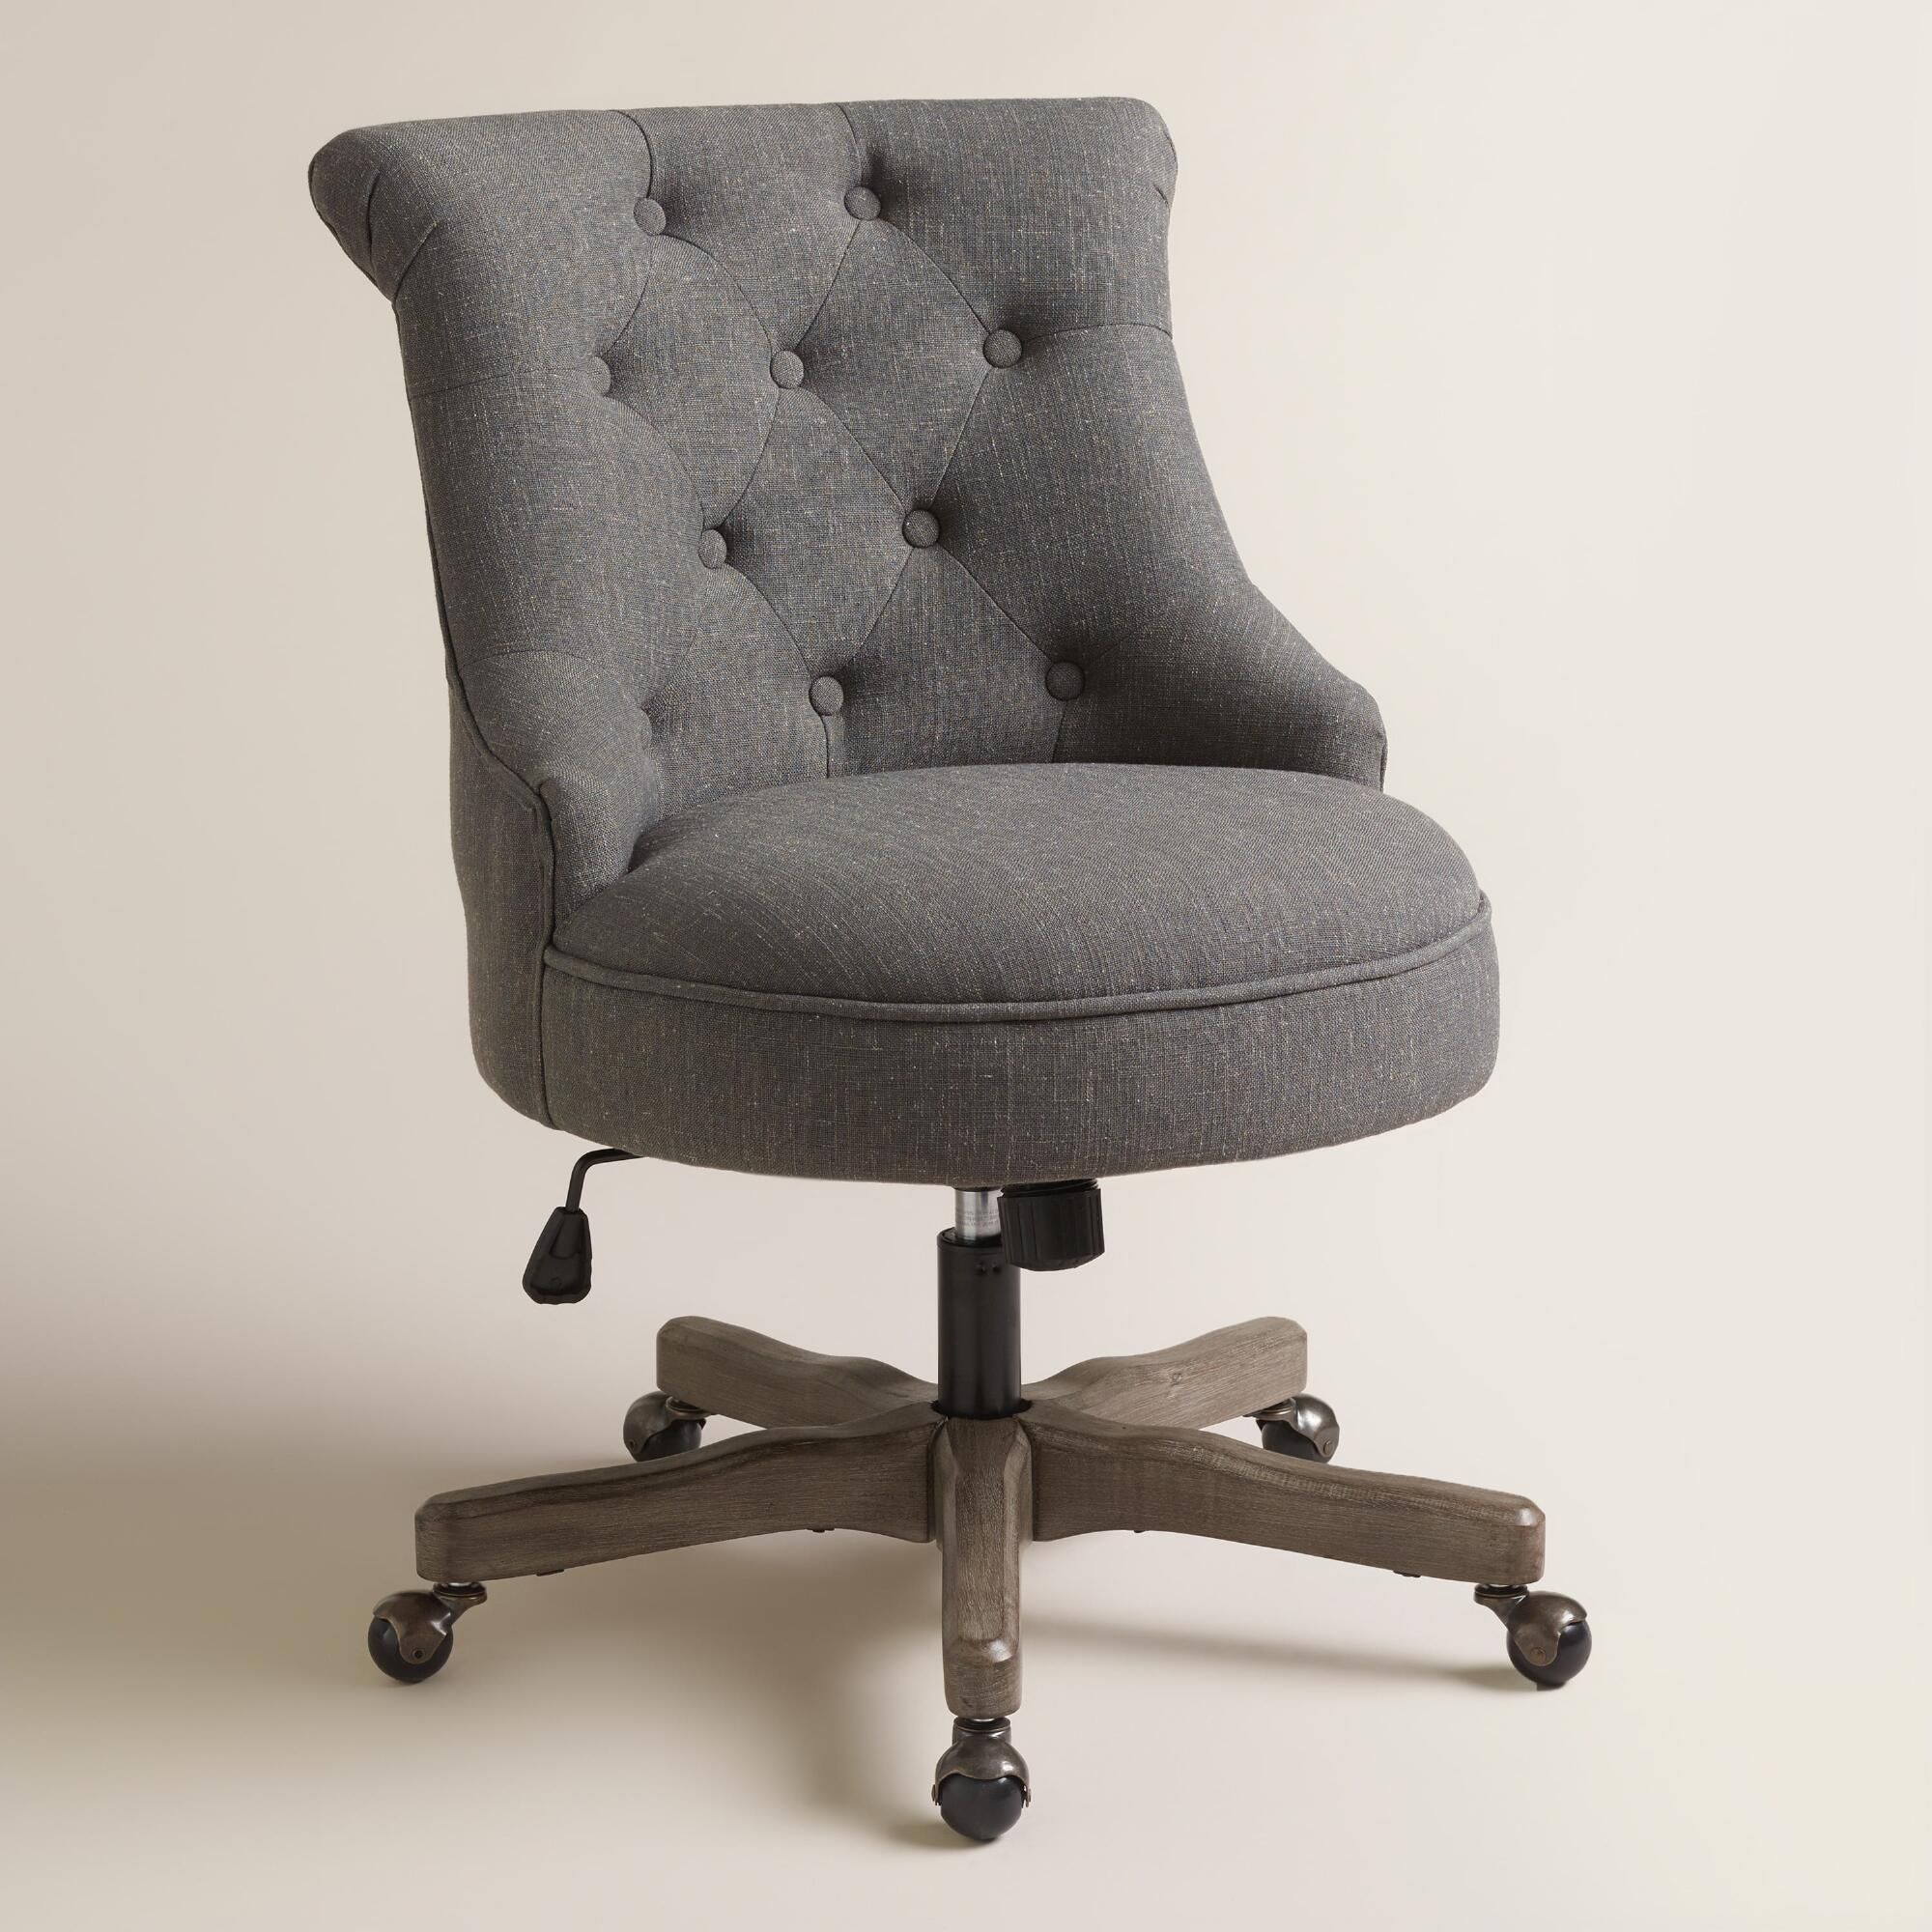 vintage office chairs for sale. charcoal elsie upholstered office chair vintage chairs for sale